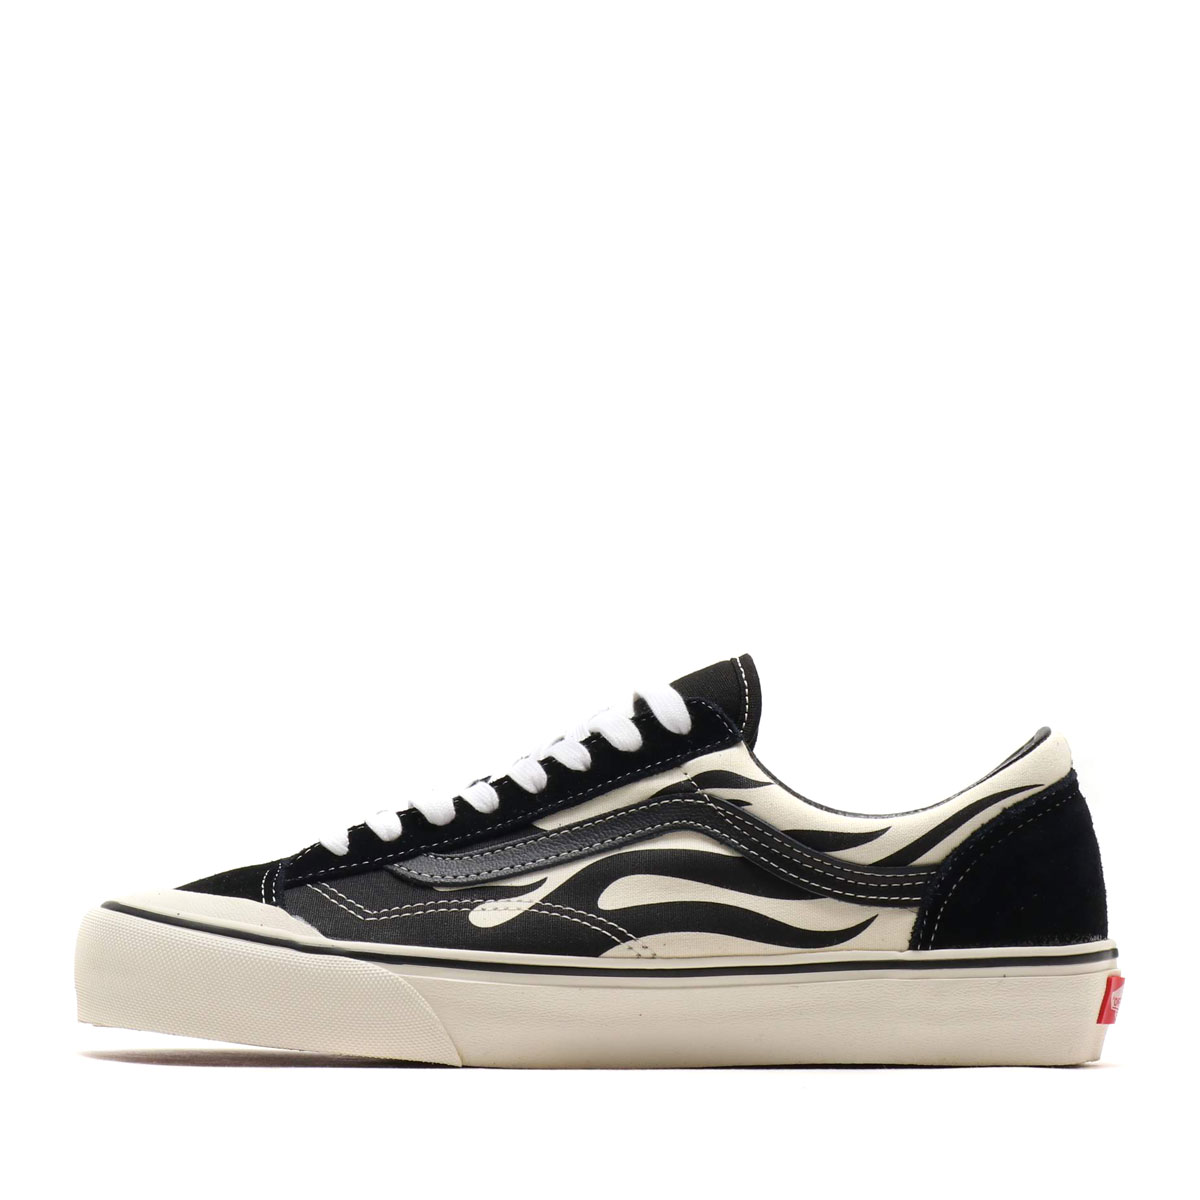 VANS STYLE 36 SF FLAME (36 station wagons style frames) BLACK 19SP I